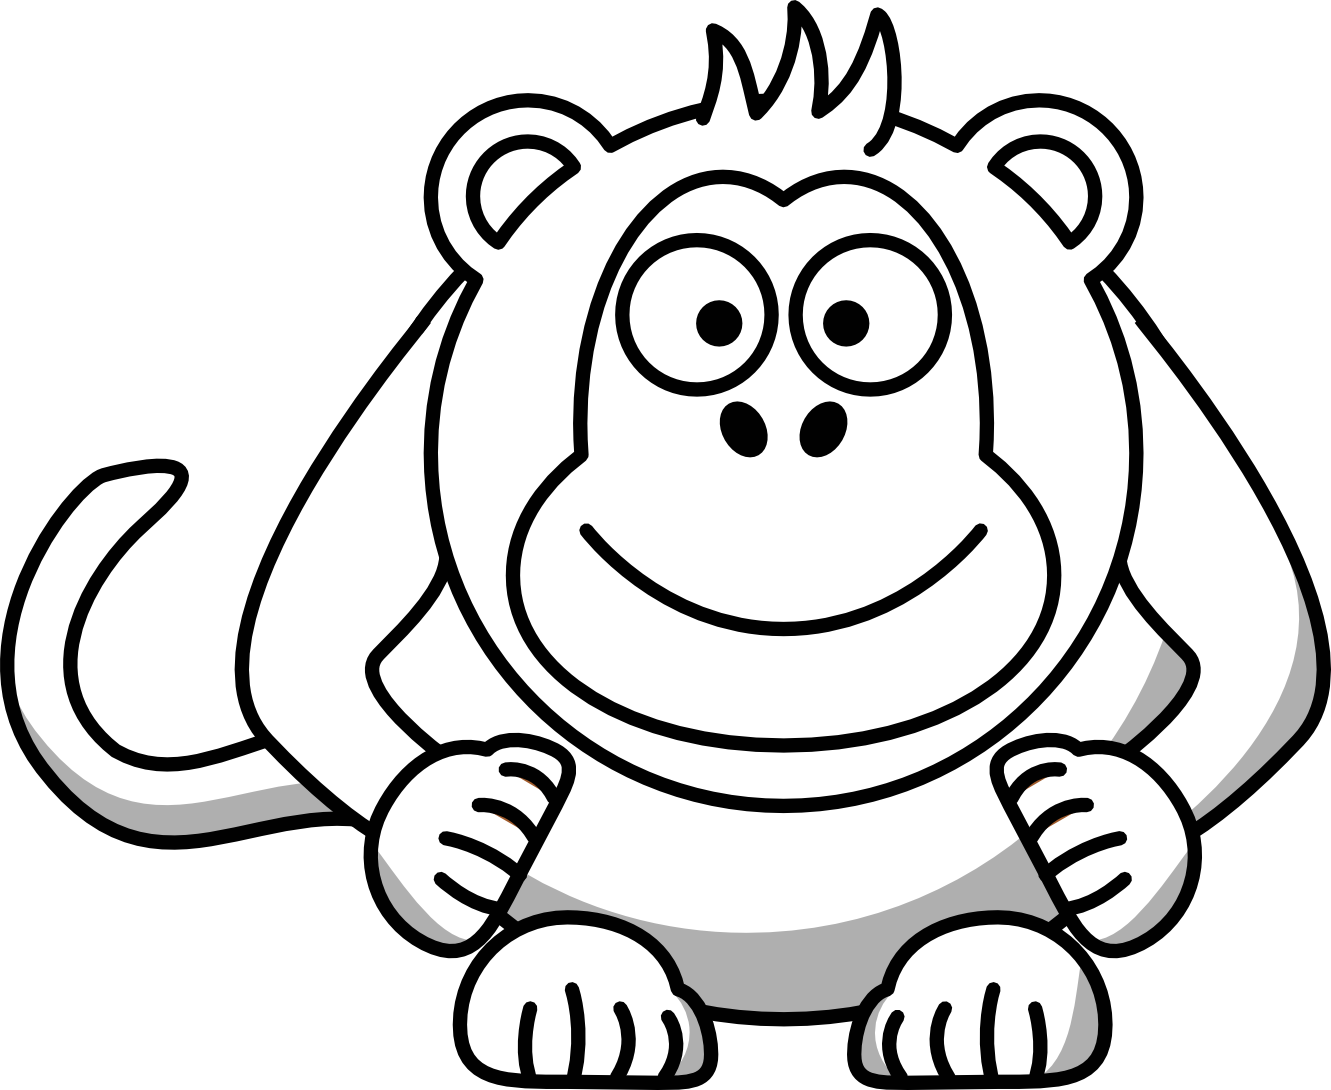 Chimp drawing black and white. Monkey clip art clipart